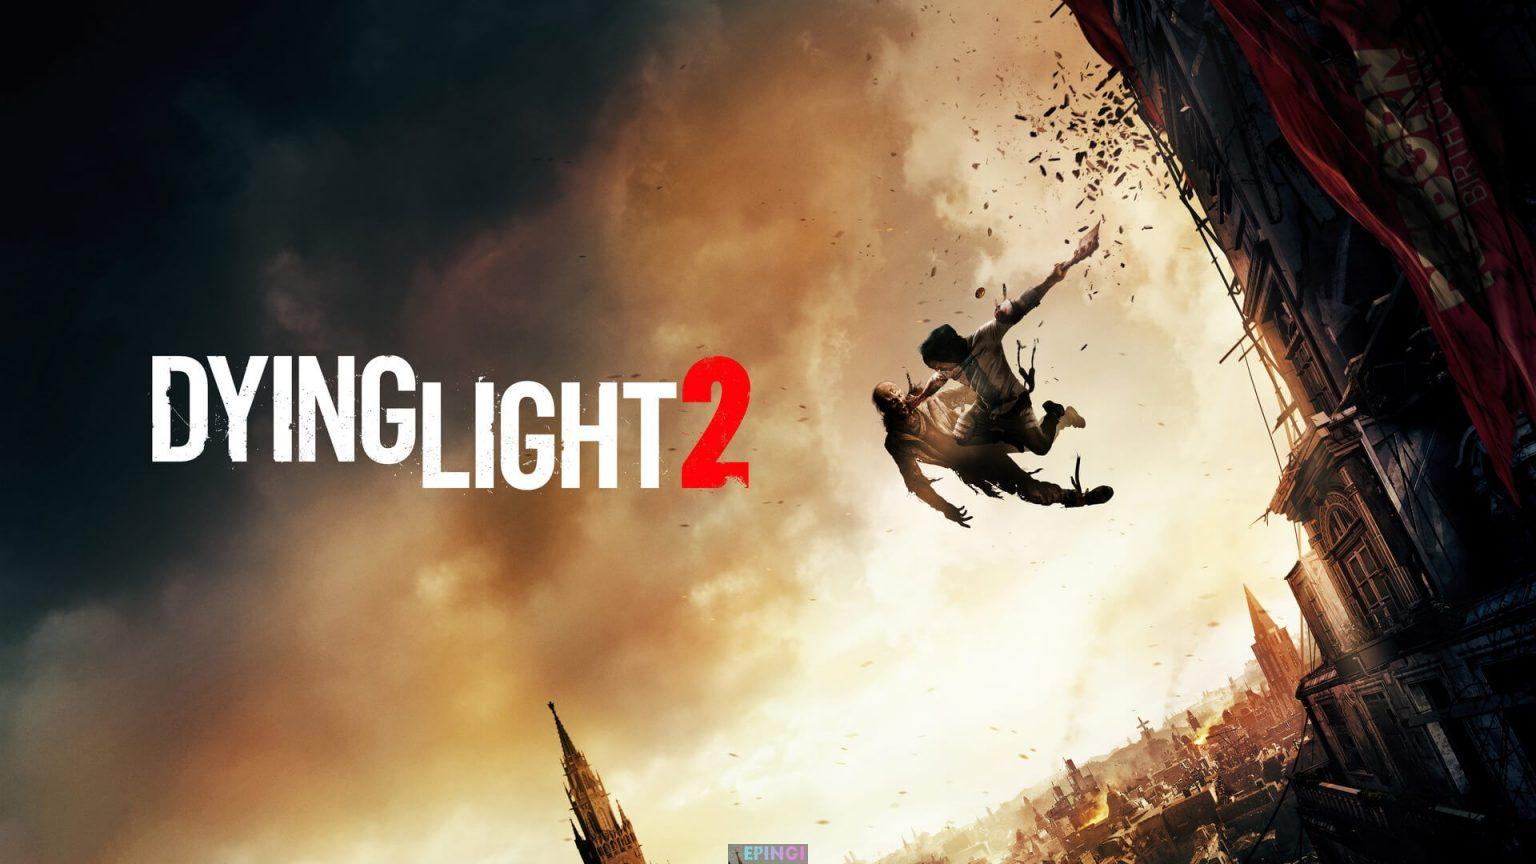 dying light 2 game art